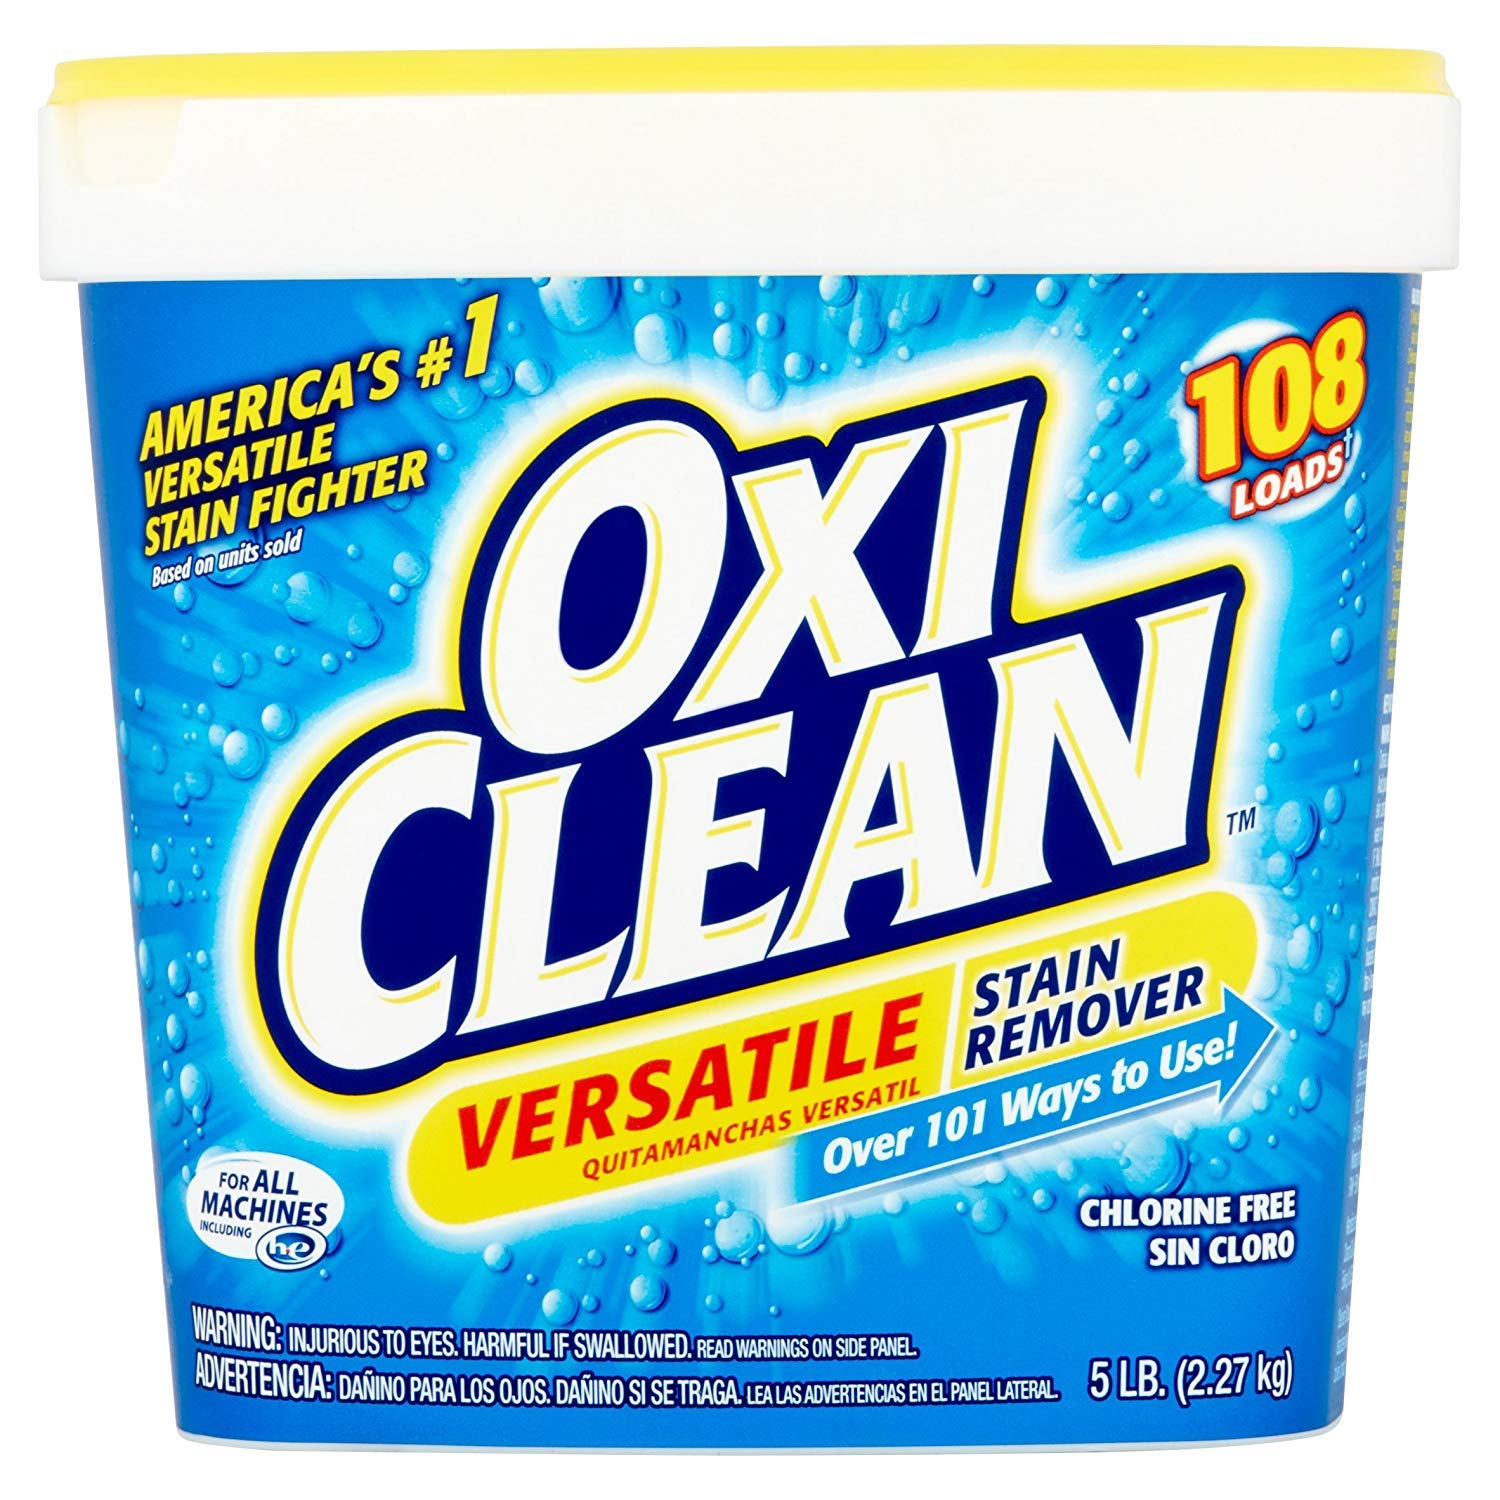 Amazon.com: OxiClean Versatile Stain Remover, 5 lbs (2.27 kg) (1 ...